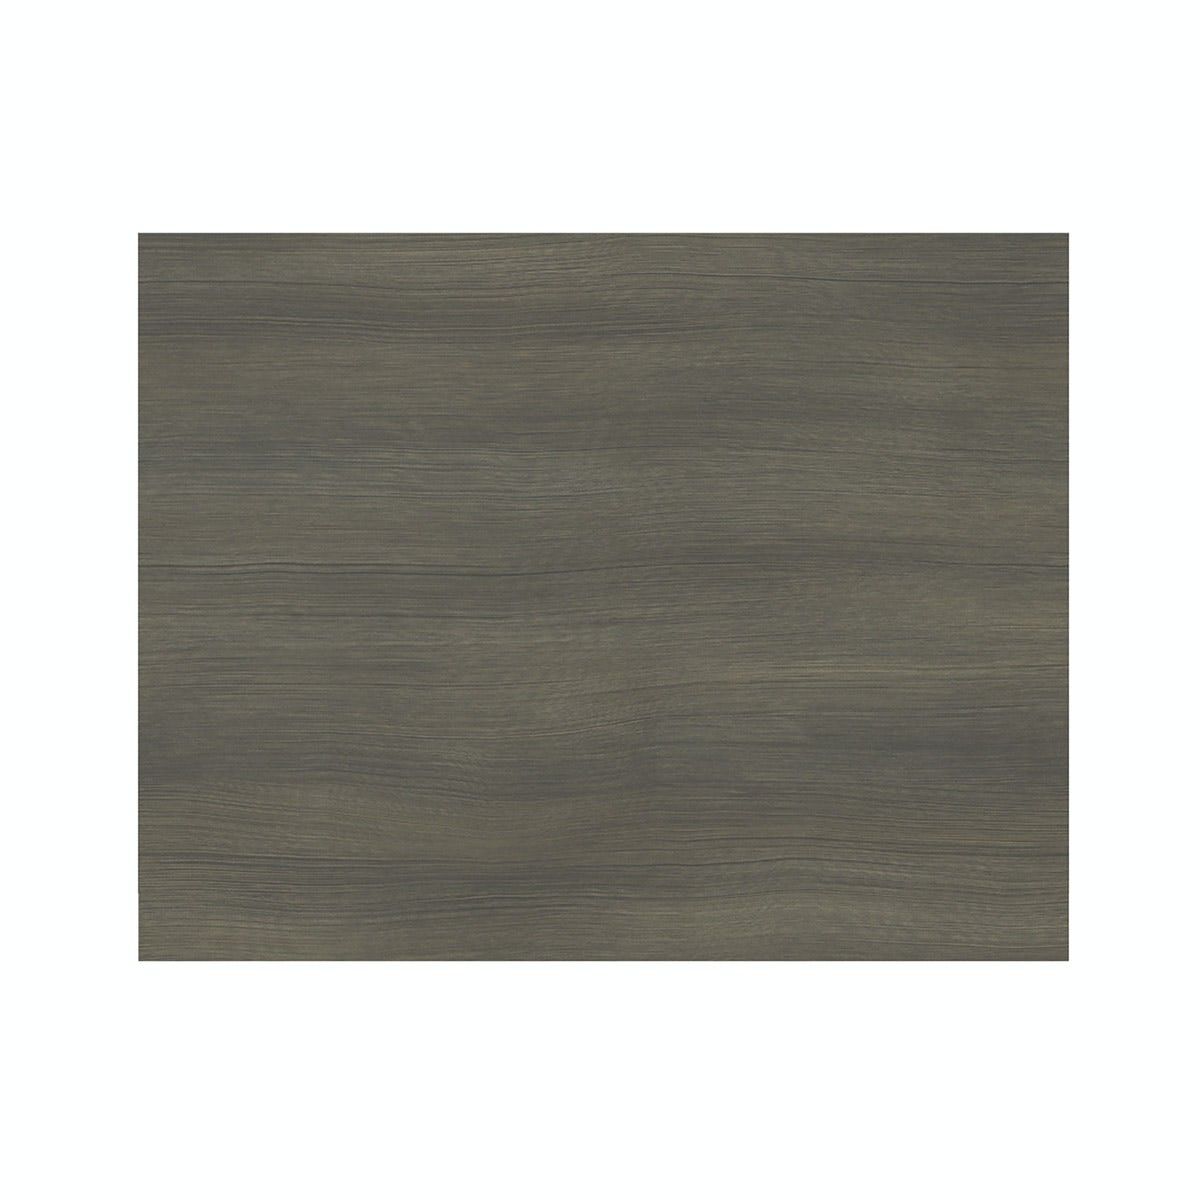 Wye walnut bath end panel 680mm